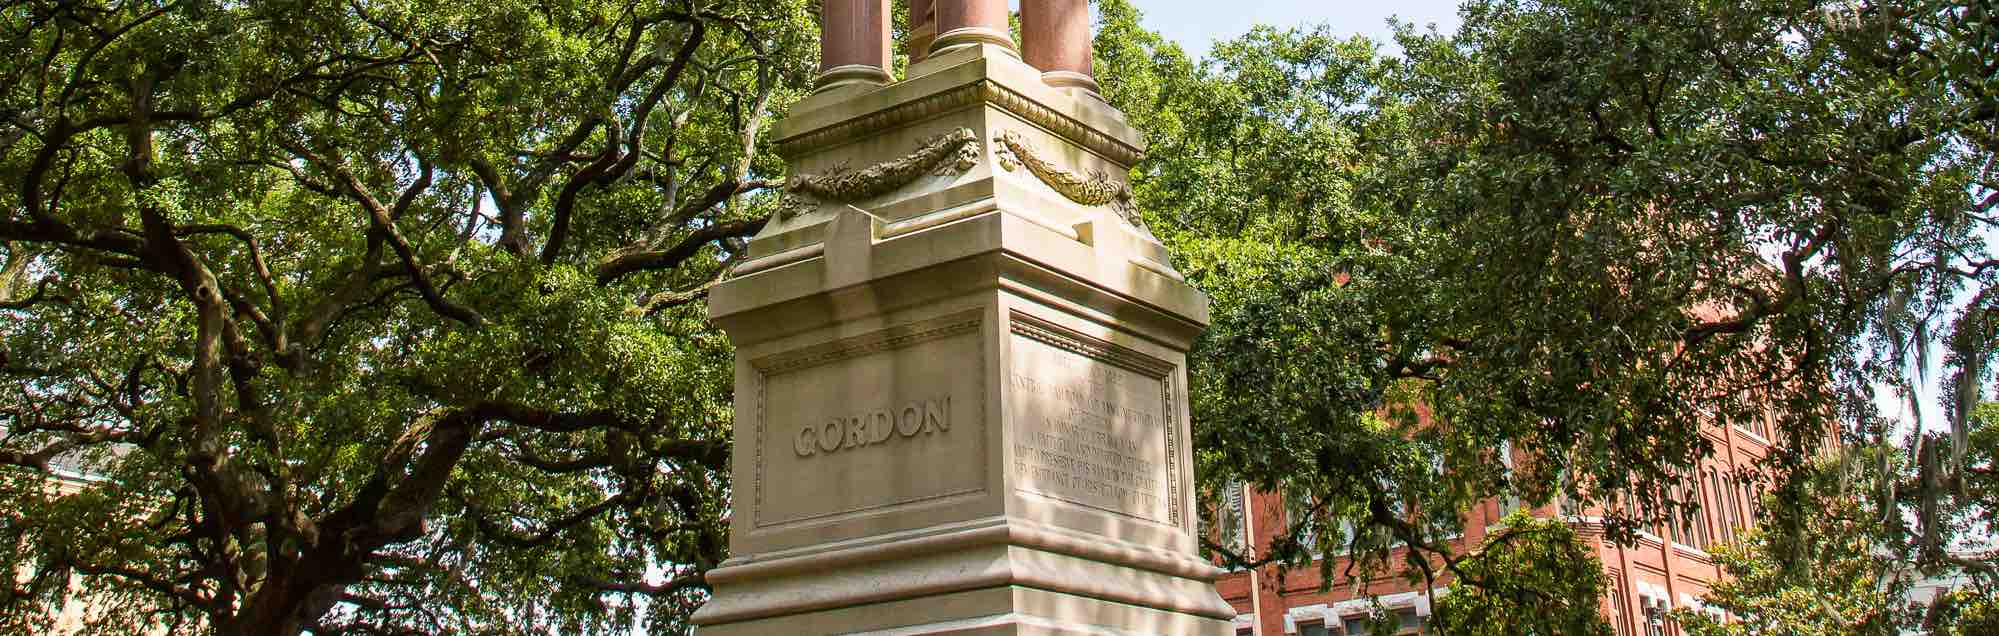 Base of the Gordon Monument in Wright Square, Savannah, GA.